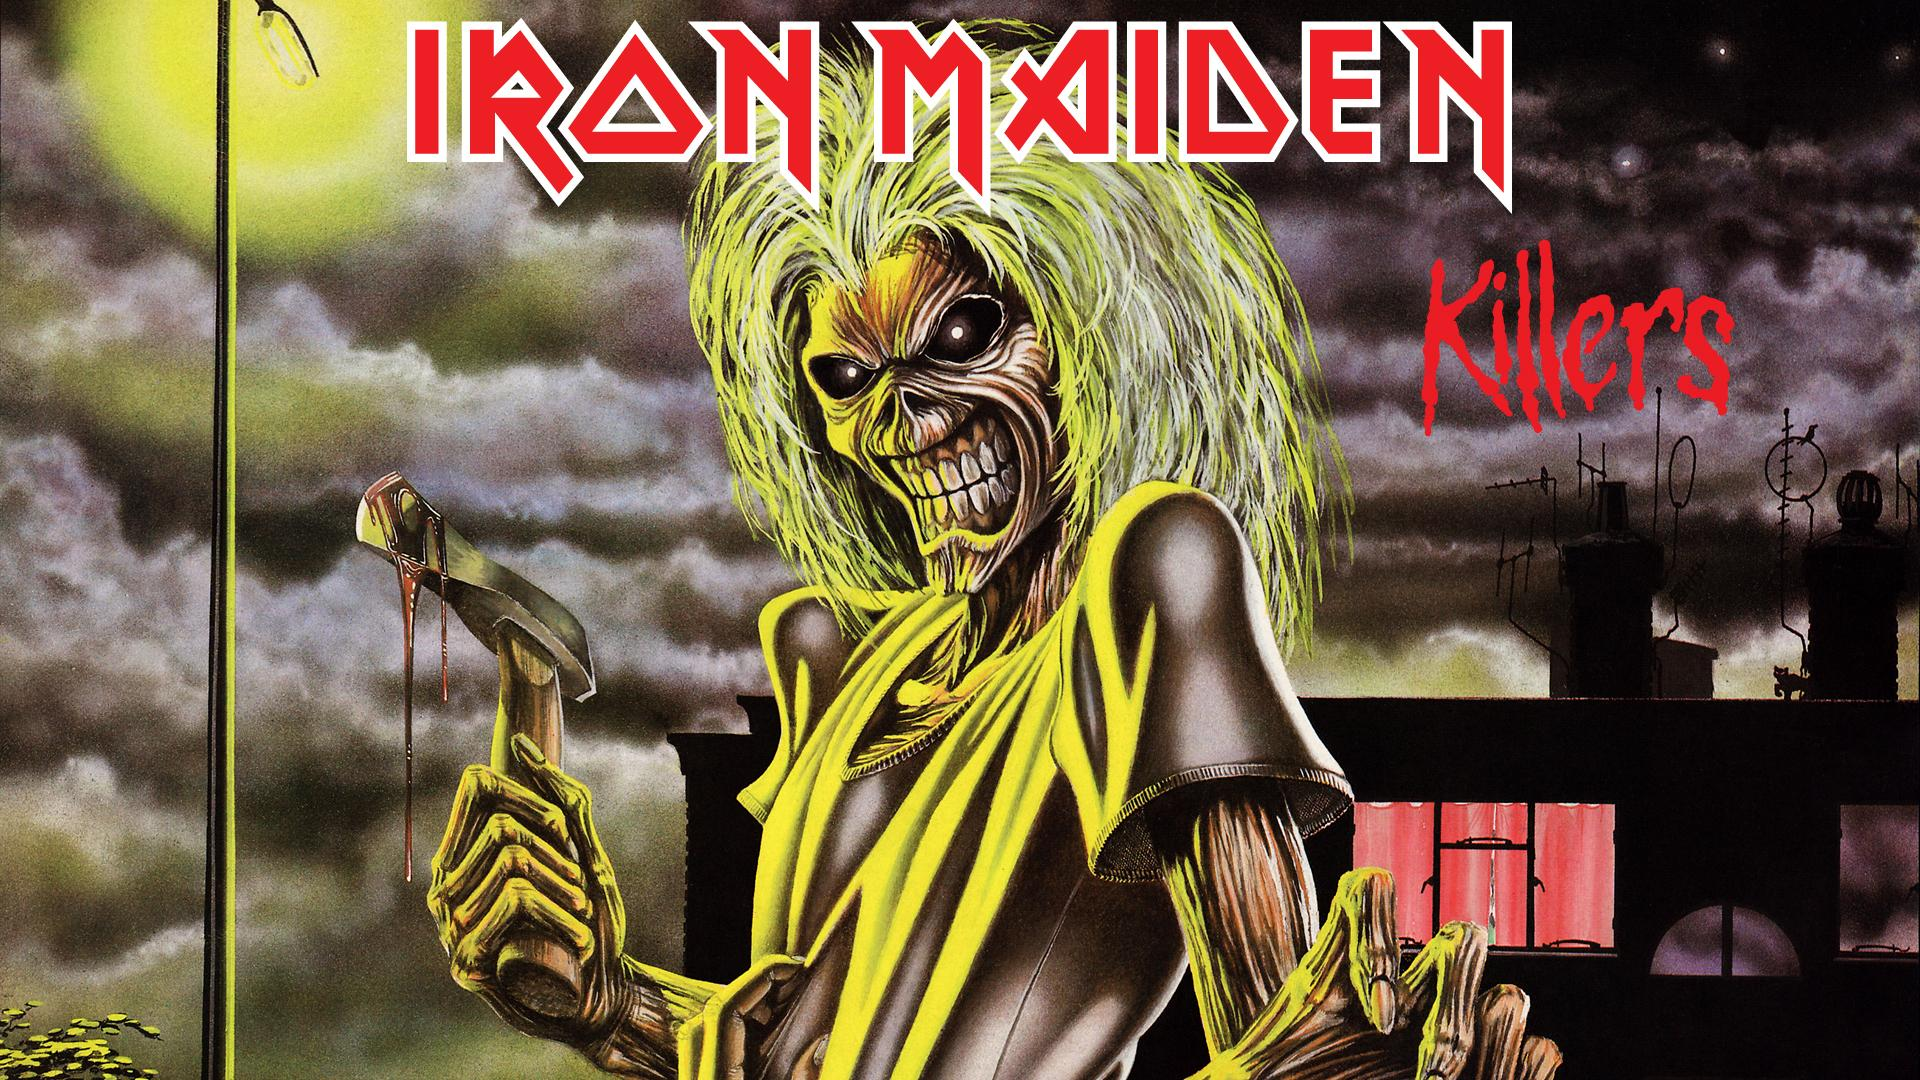 45+] Iron Maiden Desktop Wallpaper on WallpaperSafari